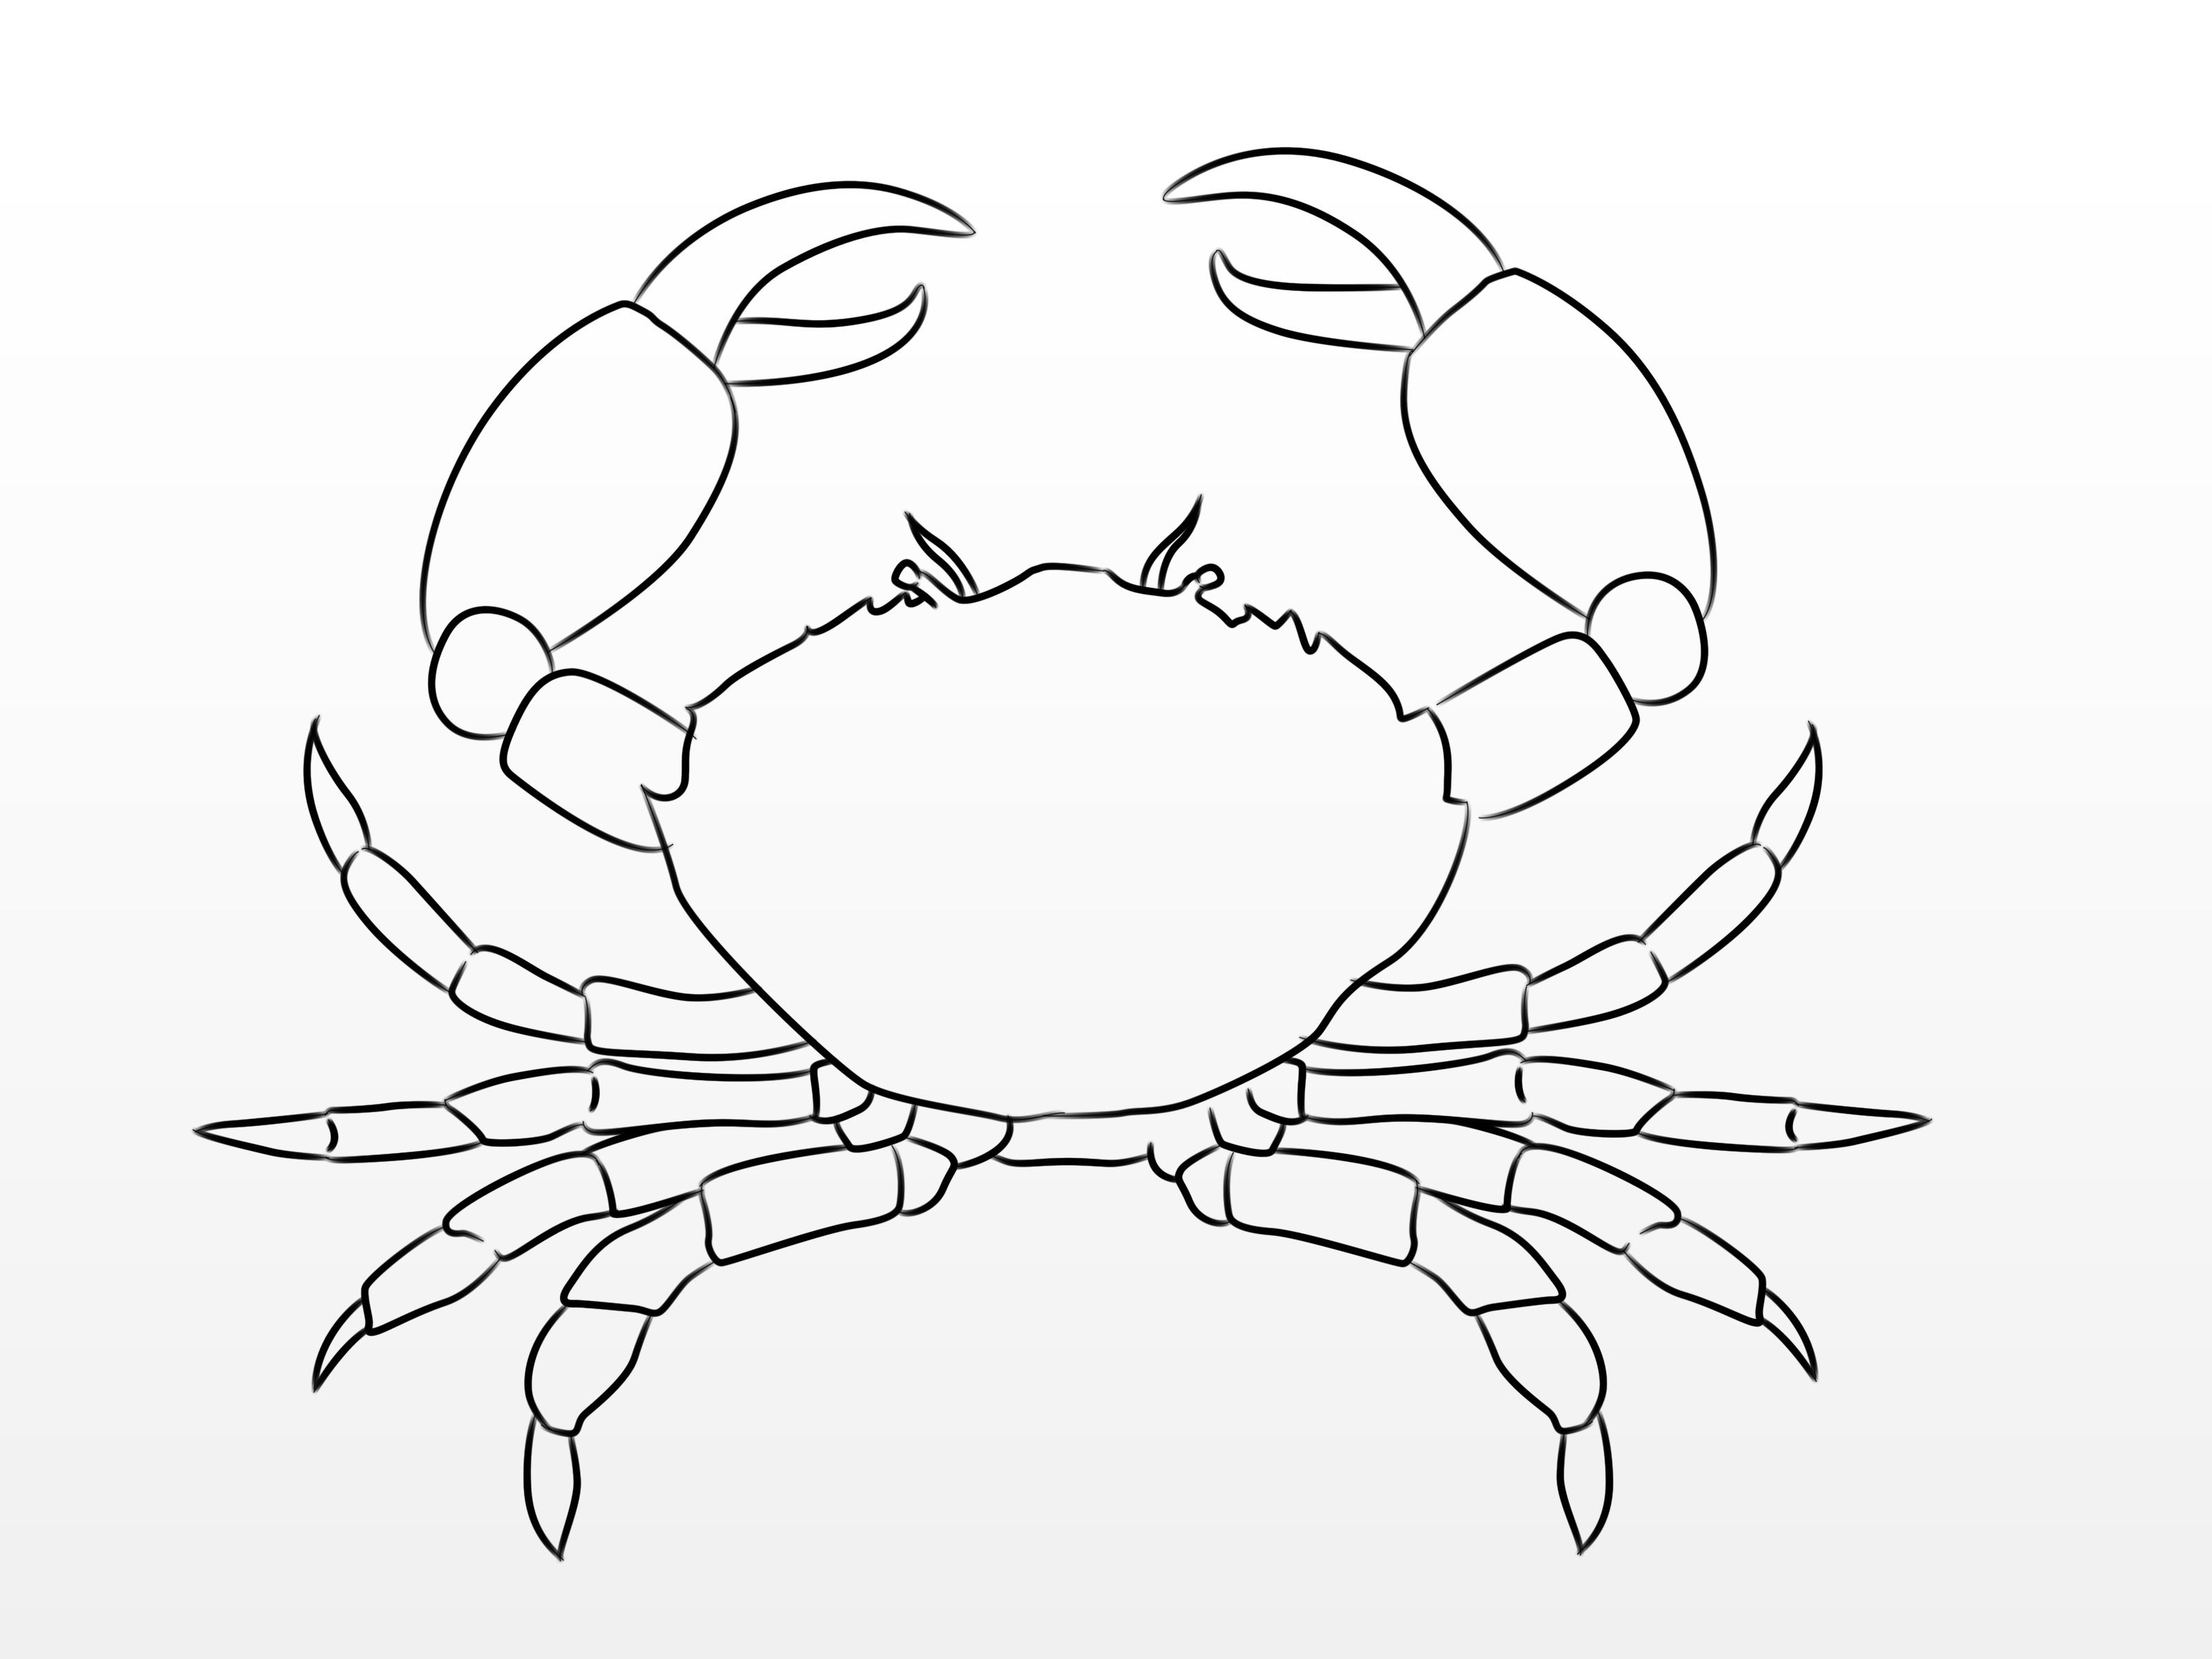 Draw A Crab